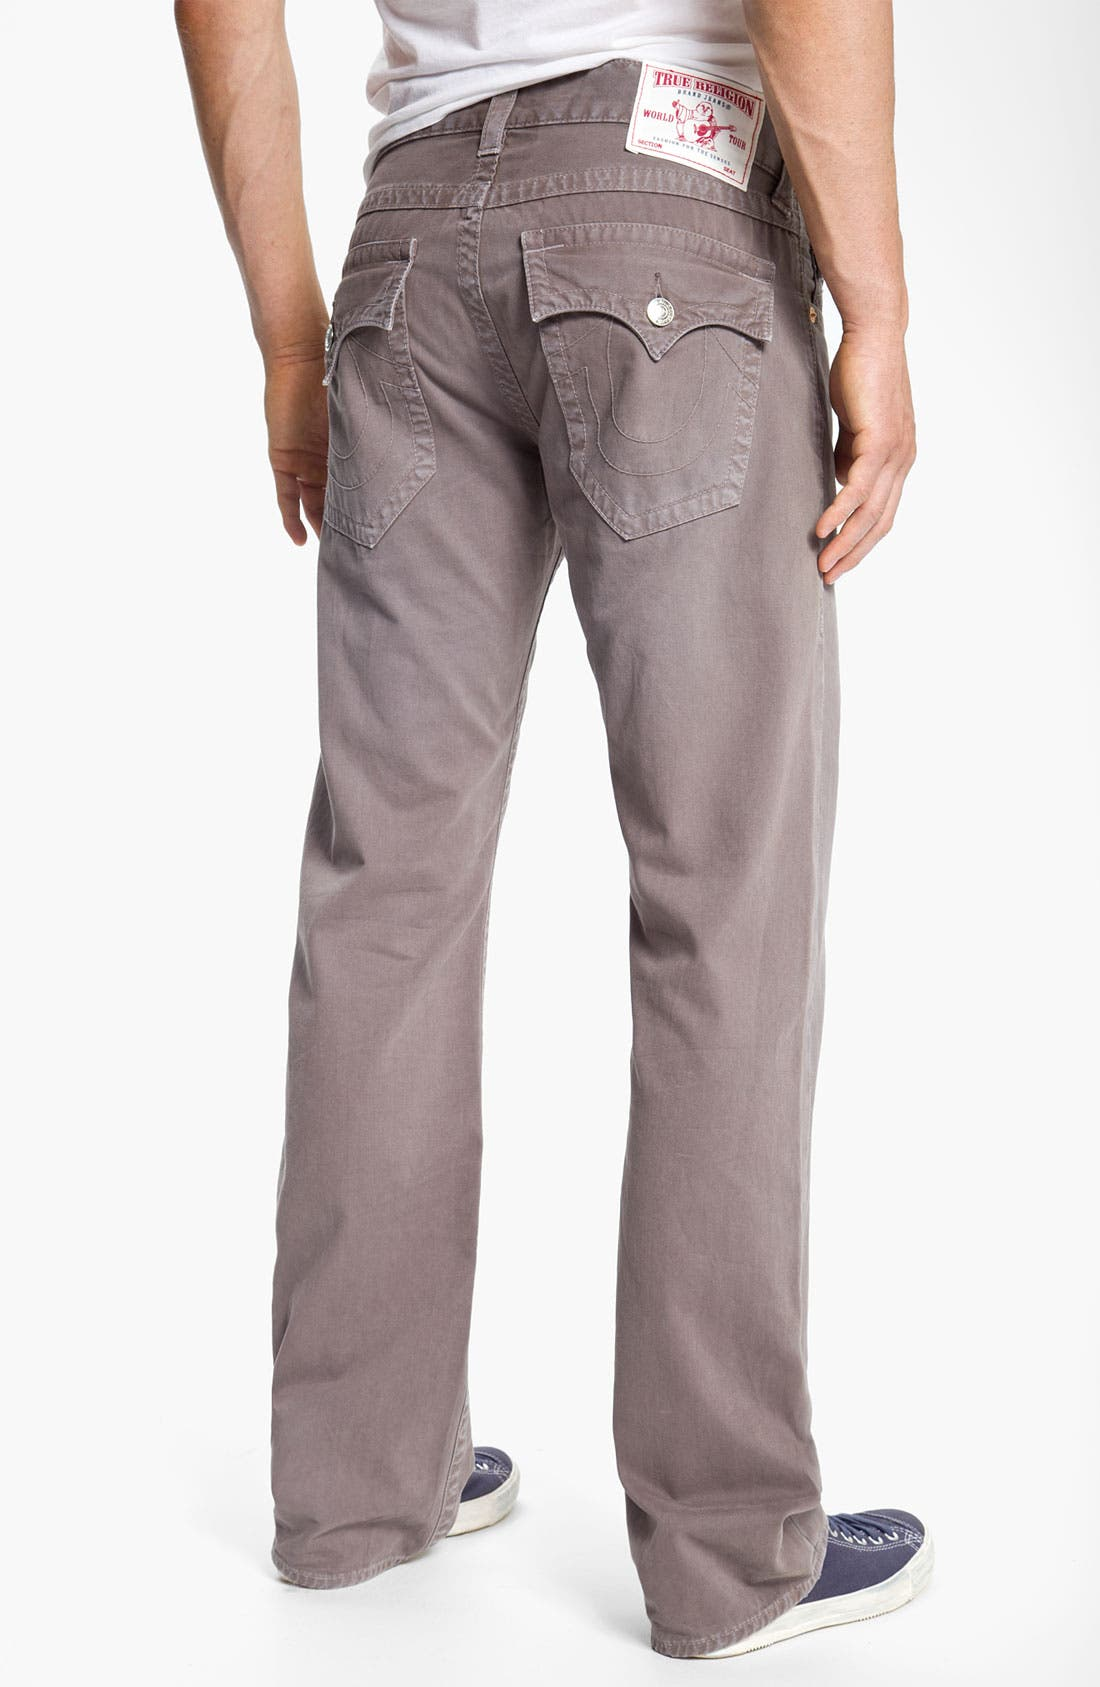 'Ricky' Straight Leg Cotton Twill Pants,                             Main thumbnail 1, color,                             027